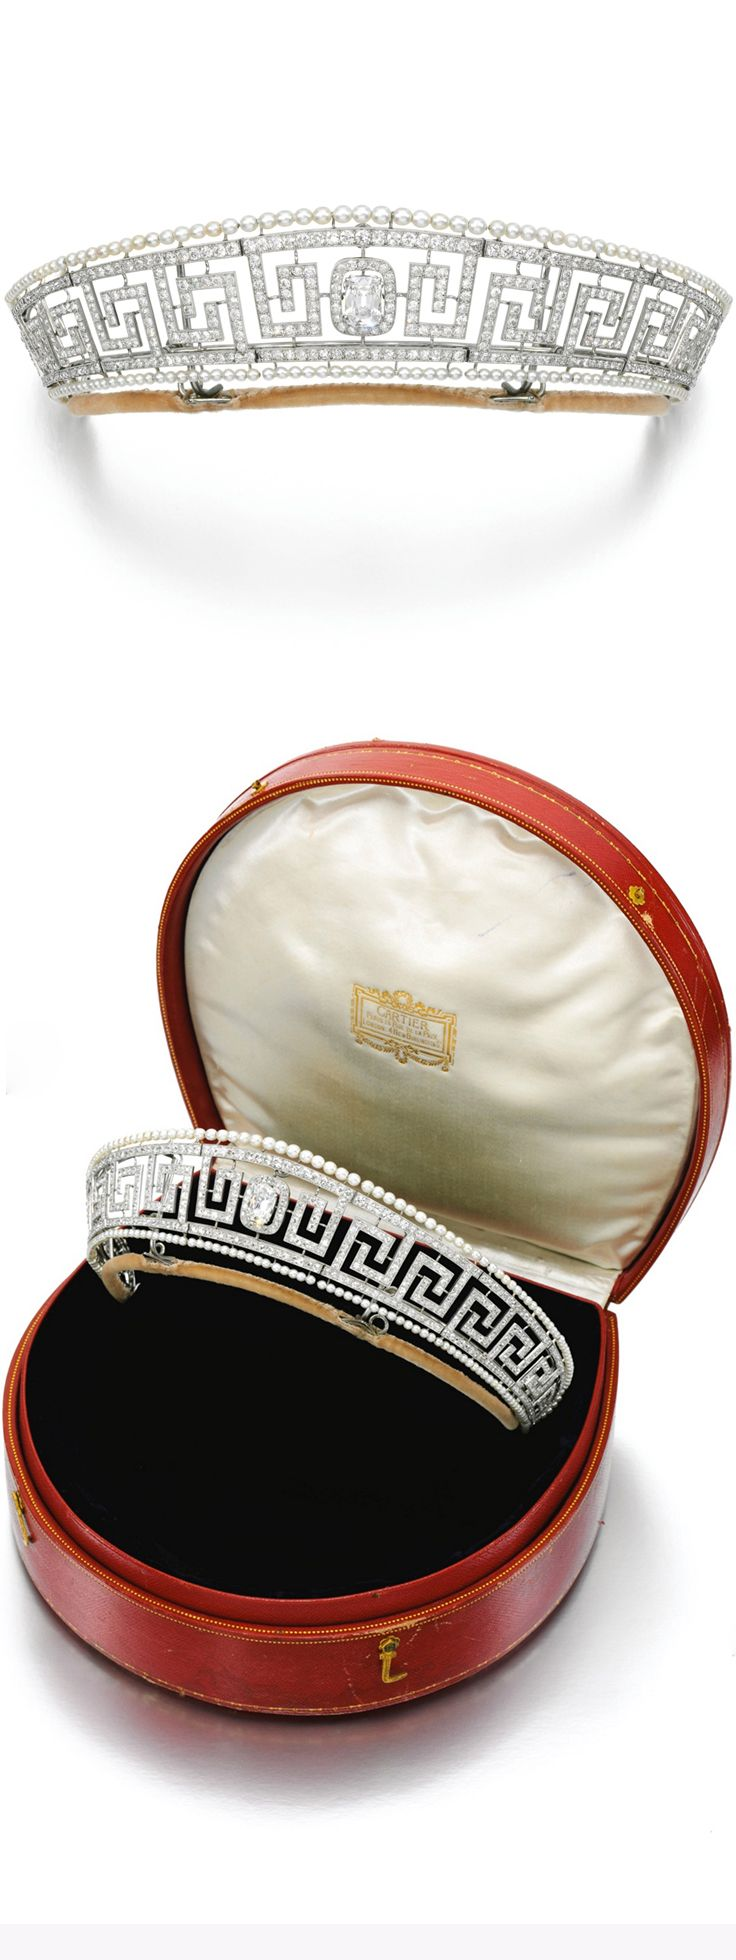 FORMERLY THE PROPERTY OF MARGUERITE LADY ALLAN (1873-1957). Important seed pearl and diamond tiara, Cartier, circa 1909. Designed as an open work Greek key band millegrain-set with circular-cut diamonds within an outer border of seed pearls, framing a central detachable old mine-cut diamond, inner circumference approximately 305mm, unsigned, later tiara frame, case stamped Cartier.